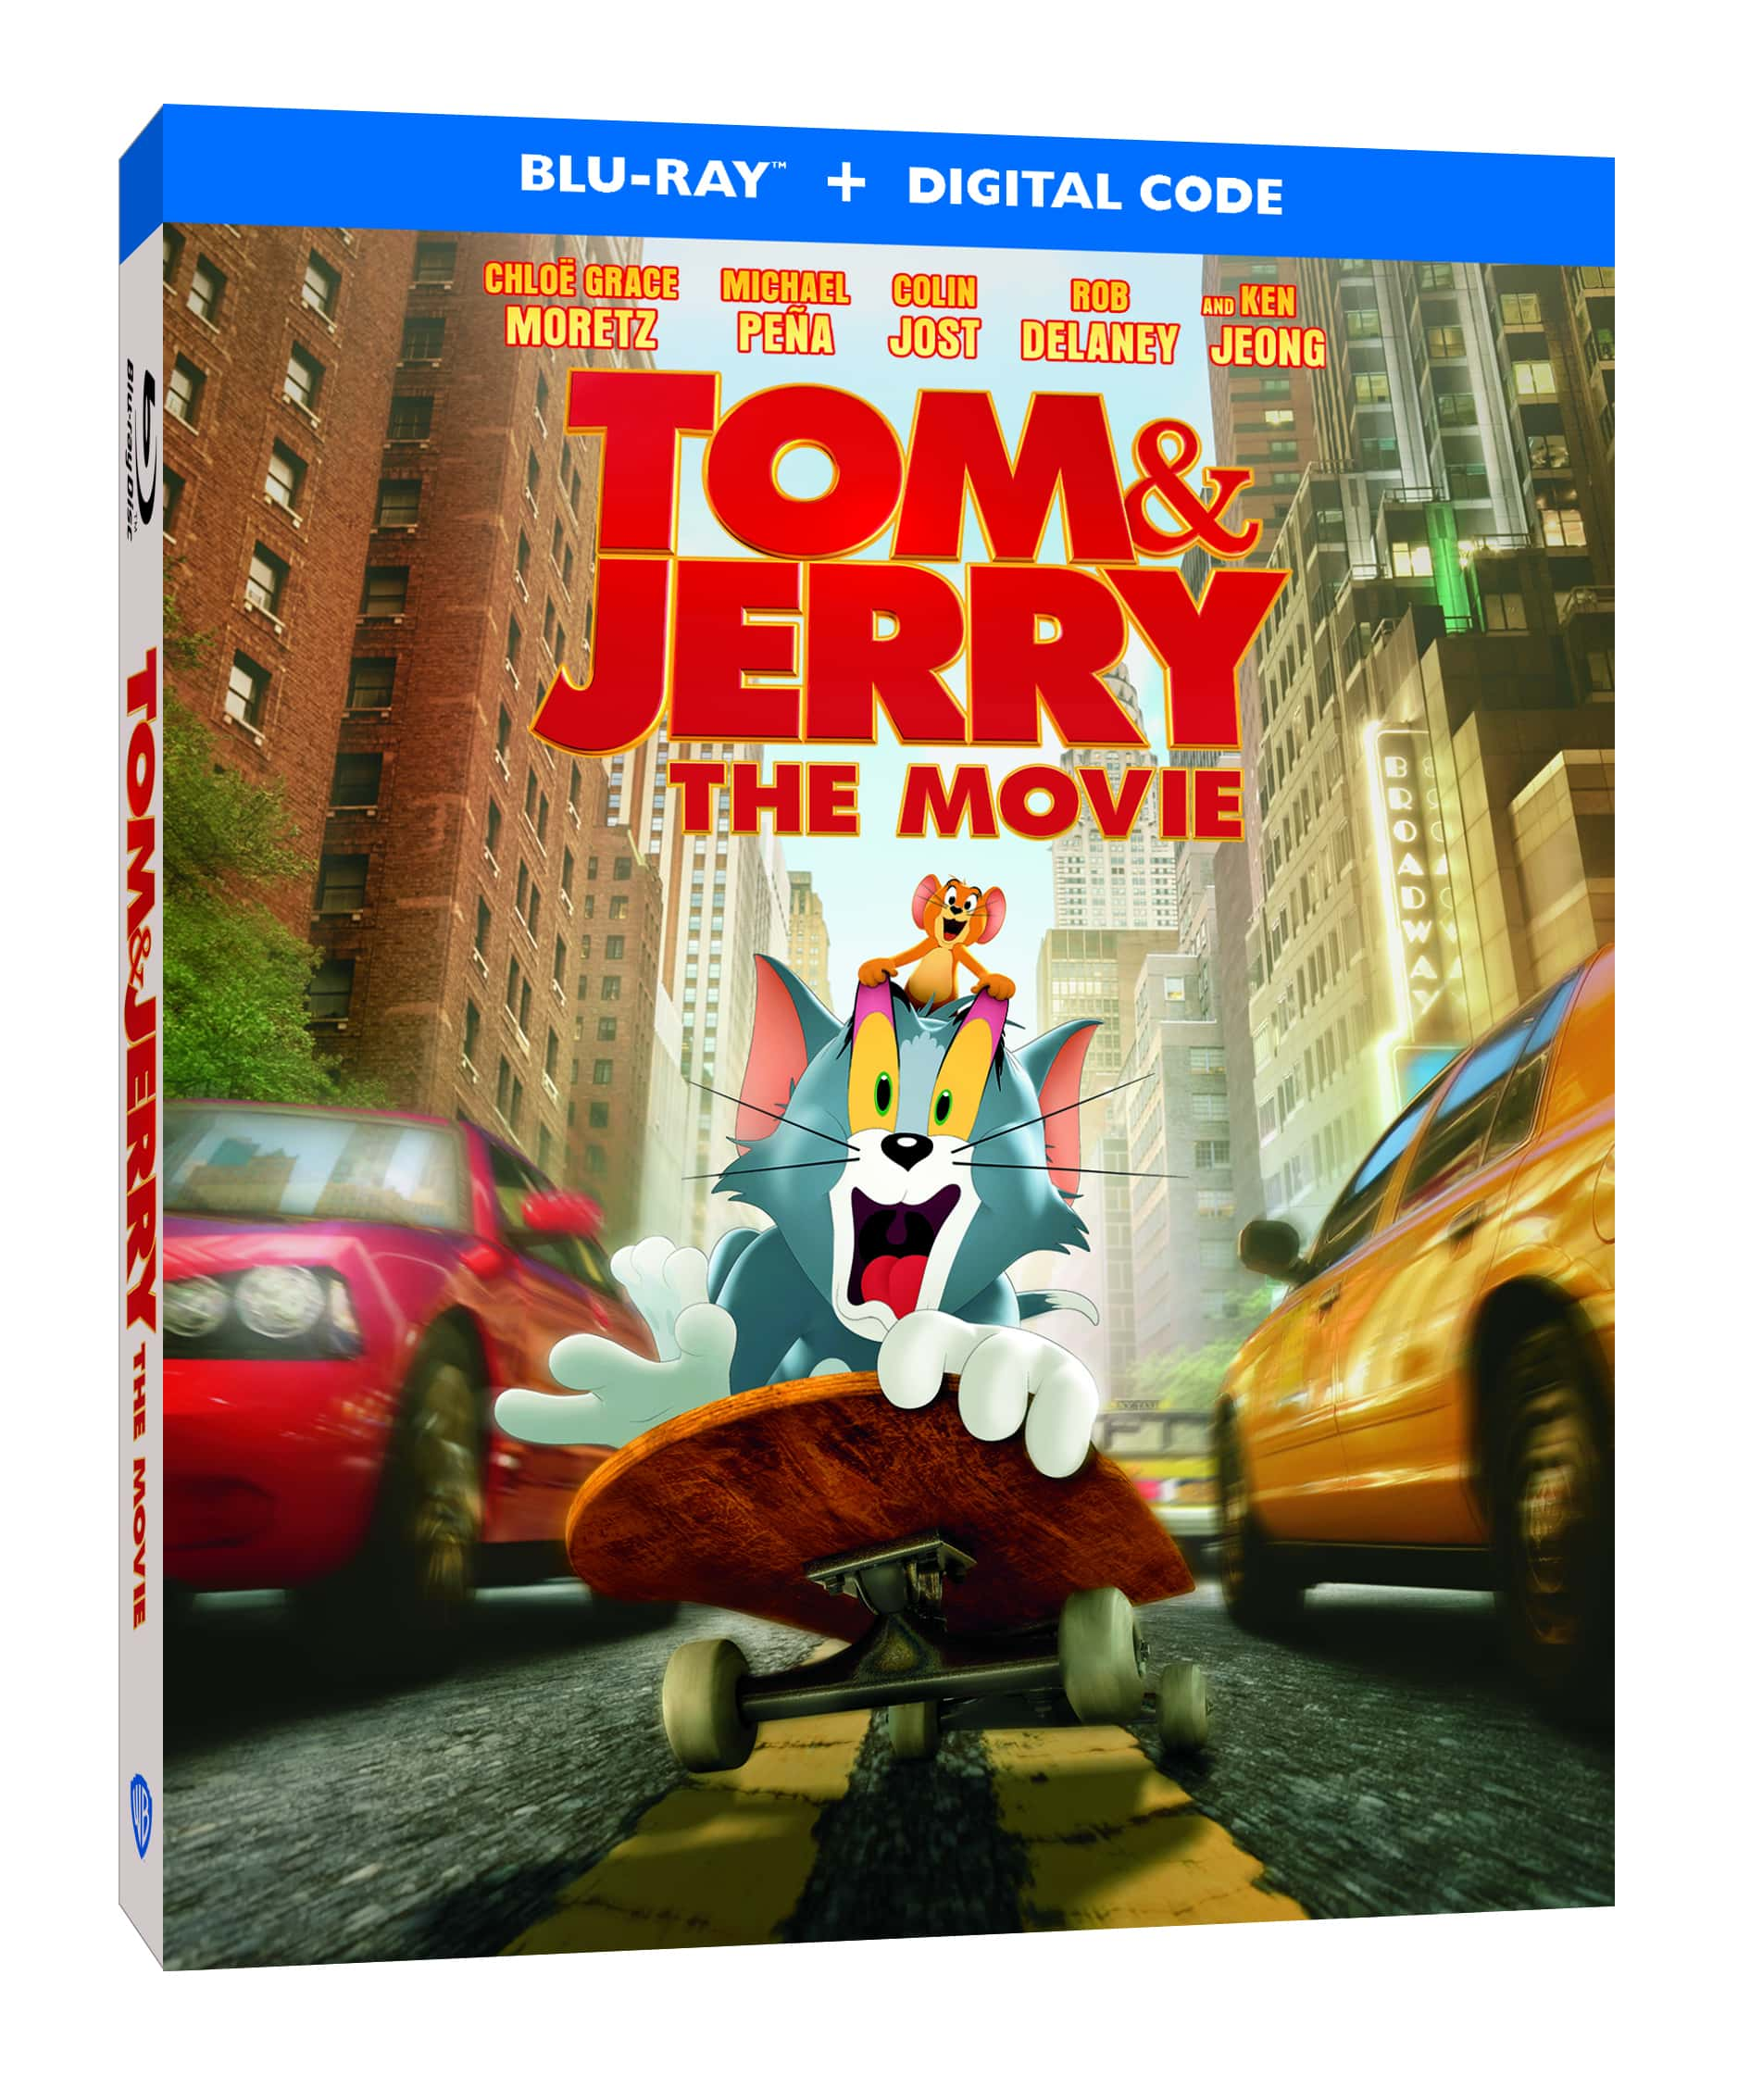 tom and jerry blu-ray